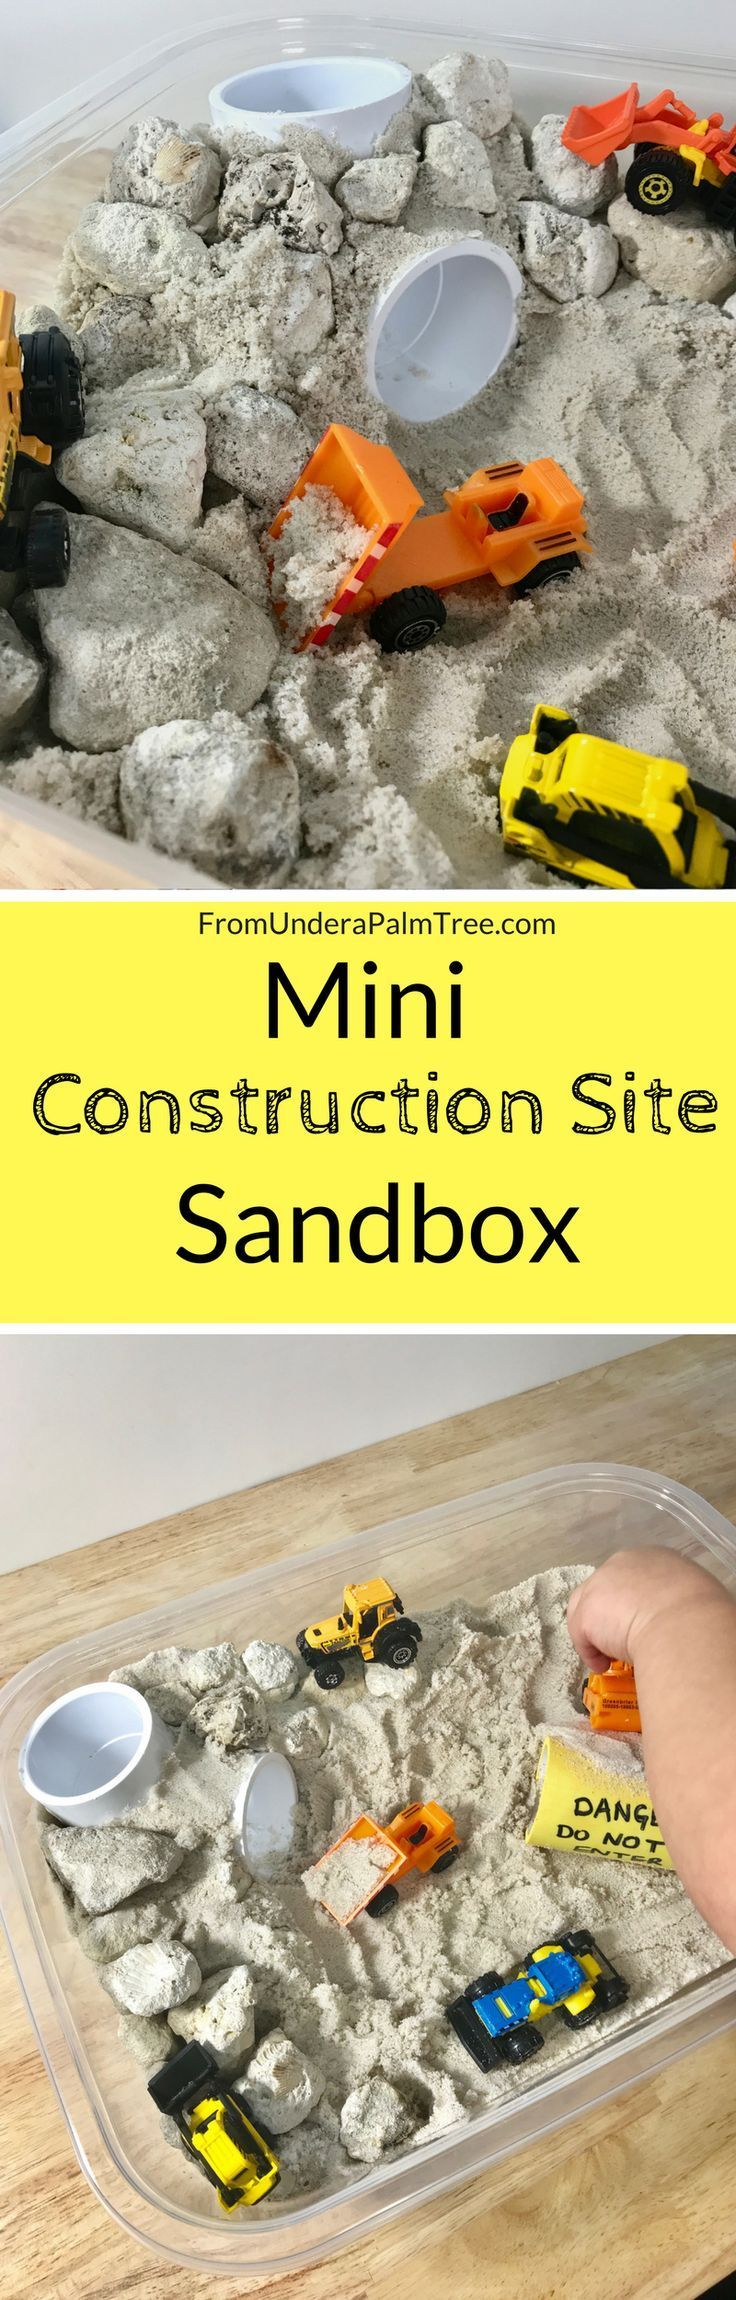 build mini construction site | sensory play | sensory activities | learning activities for toddlers | sensory play for toddlers | DIY | sandbox | mini sandbox | toddler activities | kids activities | activities for toddlers | activities for a 2 year old | indoor toddler play | DIY kids activity | sand | matchbox cars | matchbox tractors | mini construction site play |